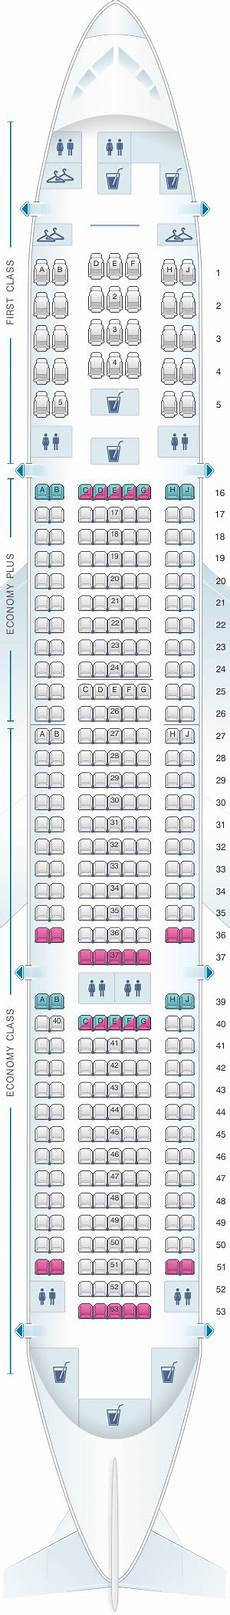 United Airlines Seating Chart 777 International Boeing 777 200 Seat Map United Airlines Wallseat Co